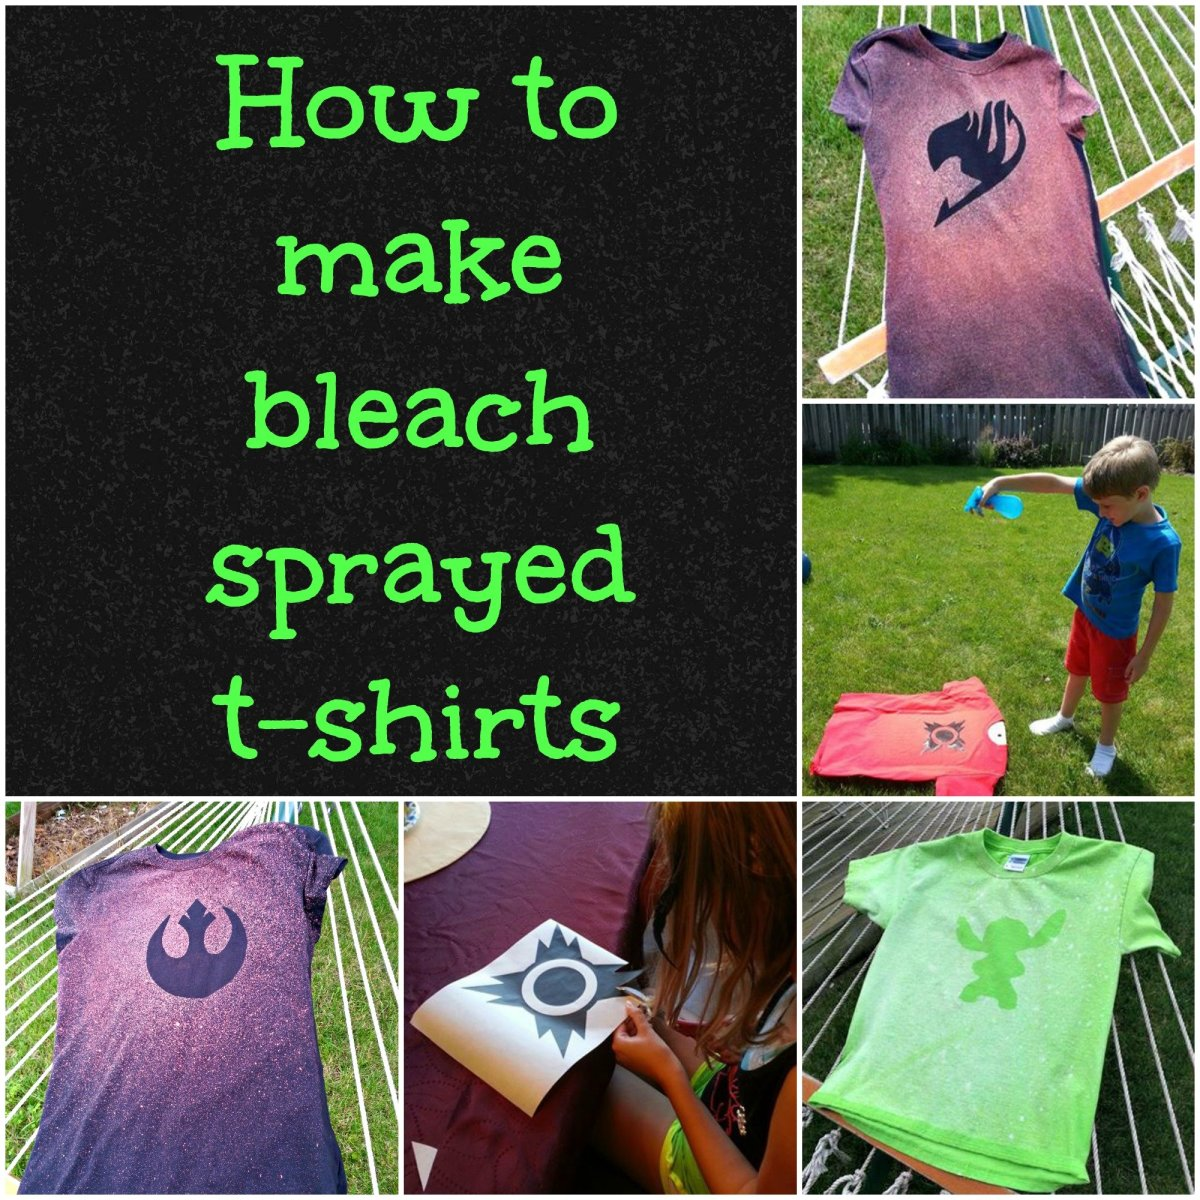 How to Make Bleach Spray T-Shirts